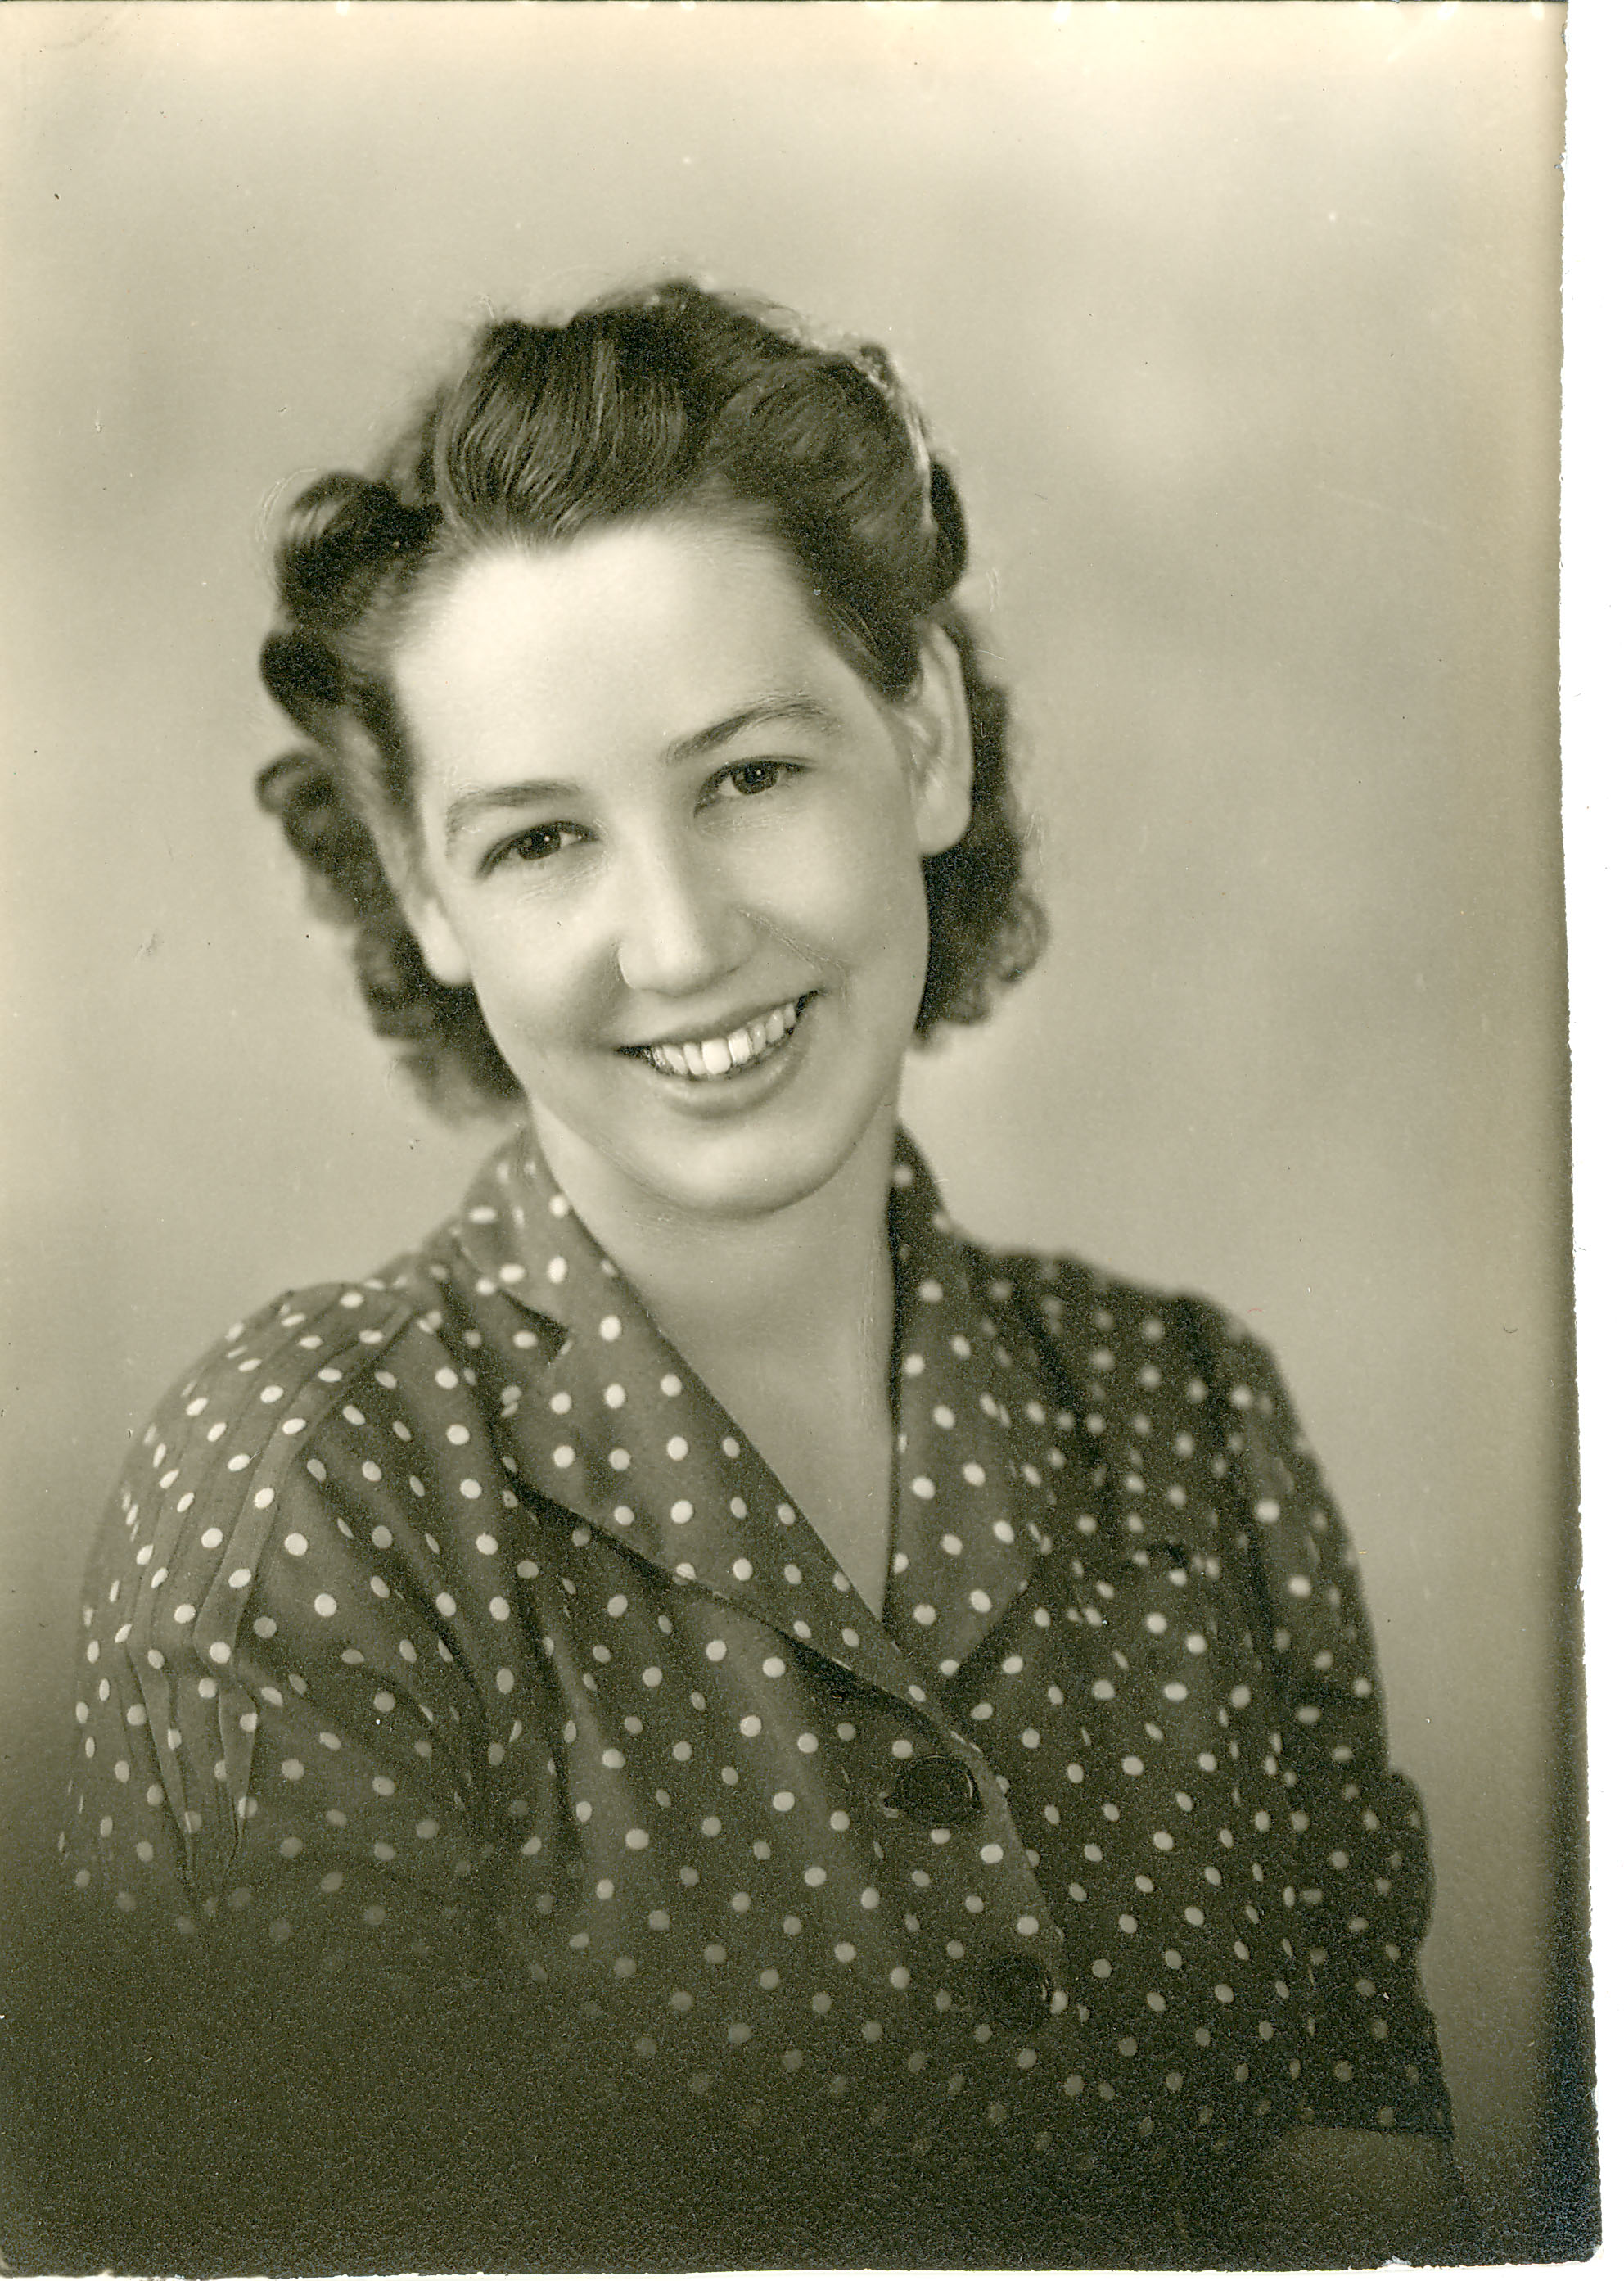 Lucy Patrica Roth